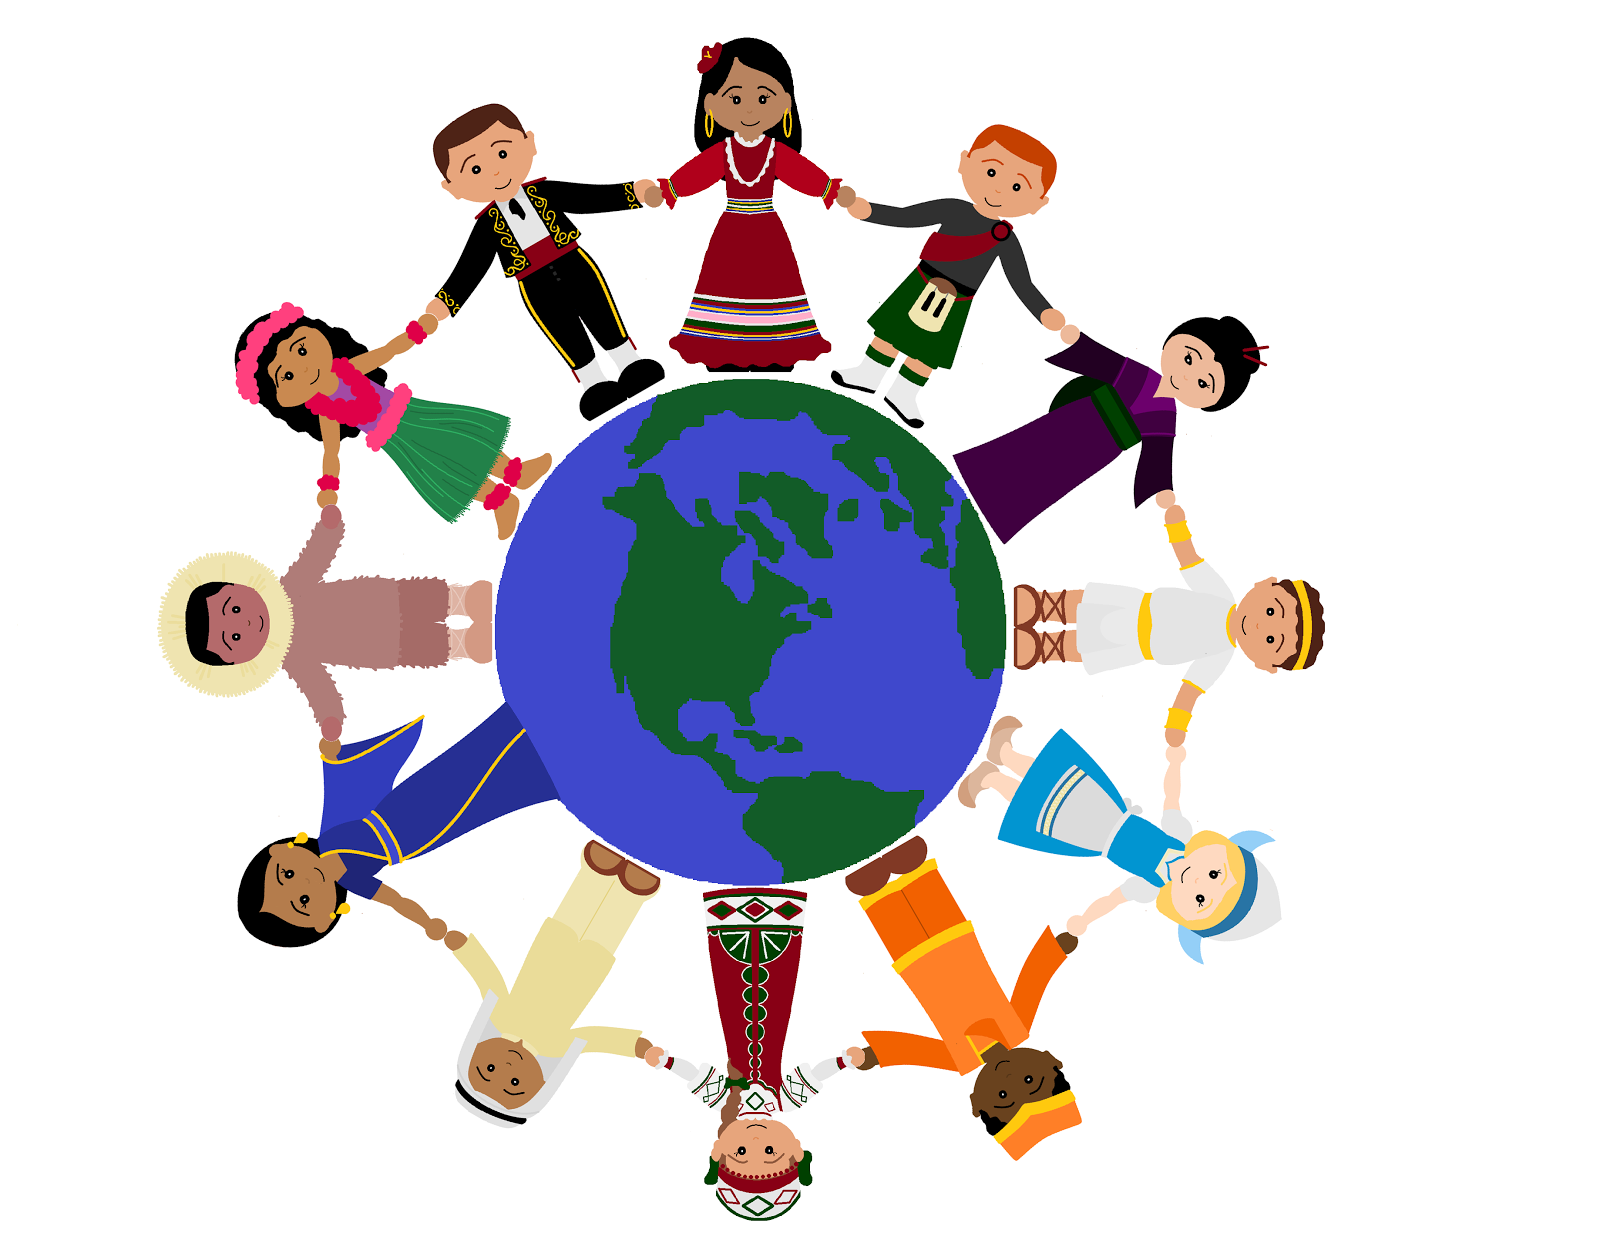 Kids Holding Hands Around The World Clipart Images & Pictures - Becuo